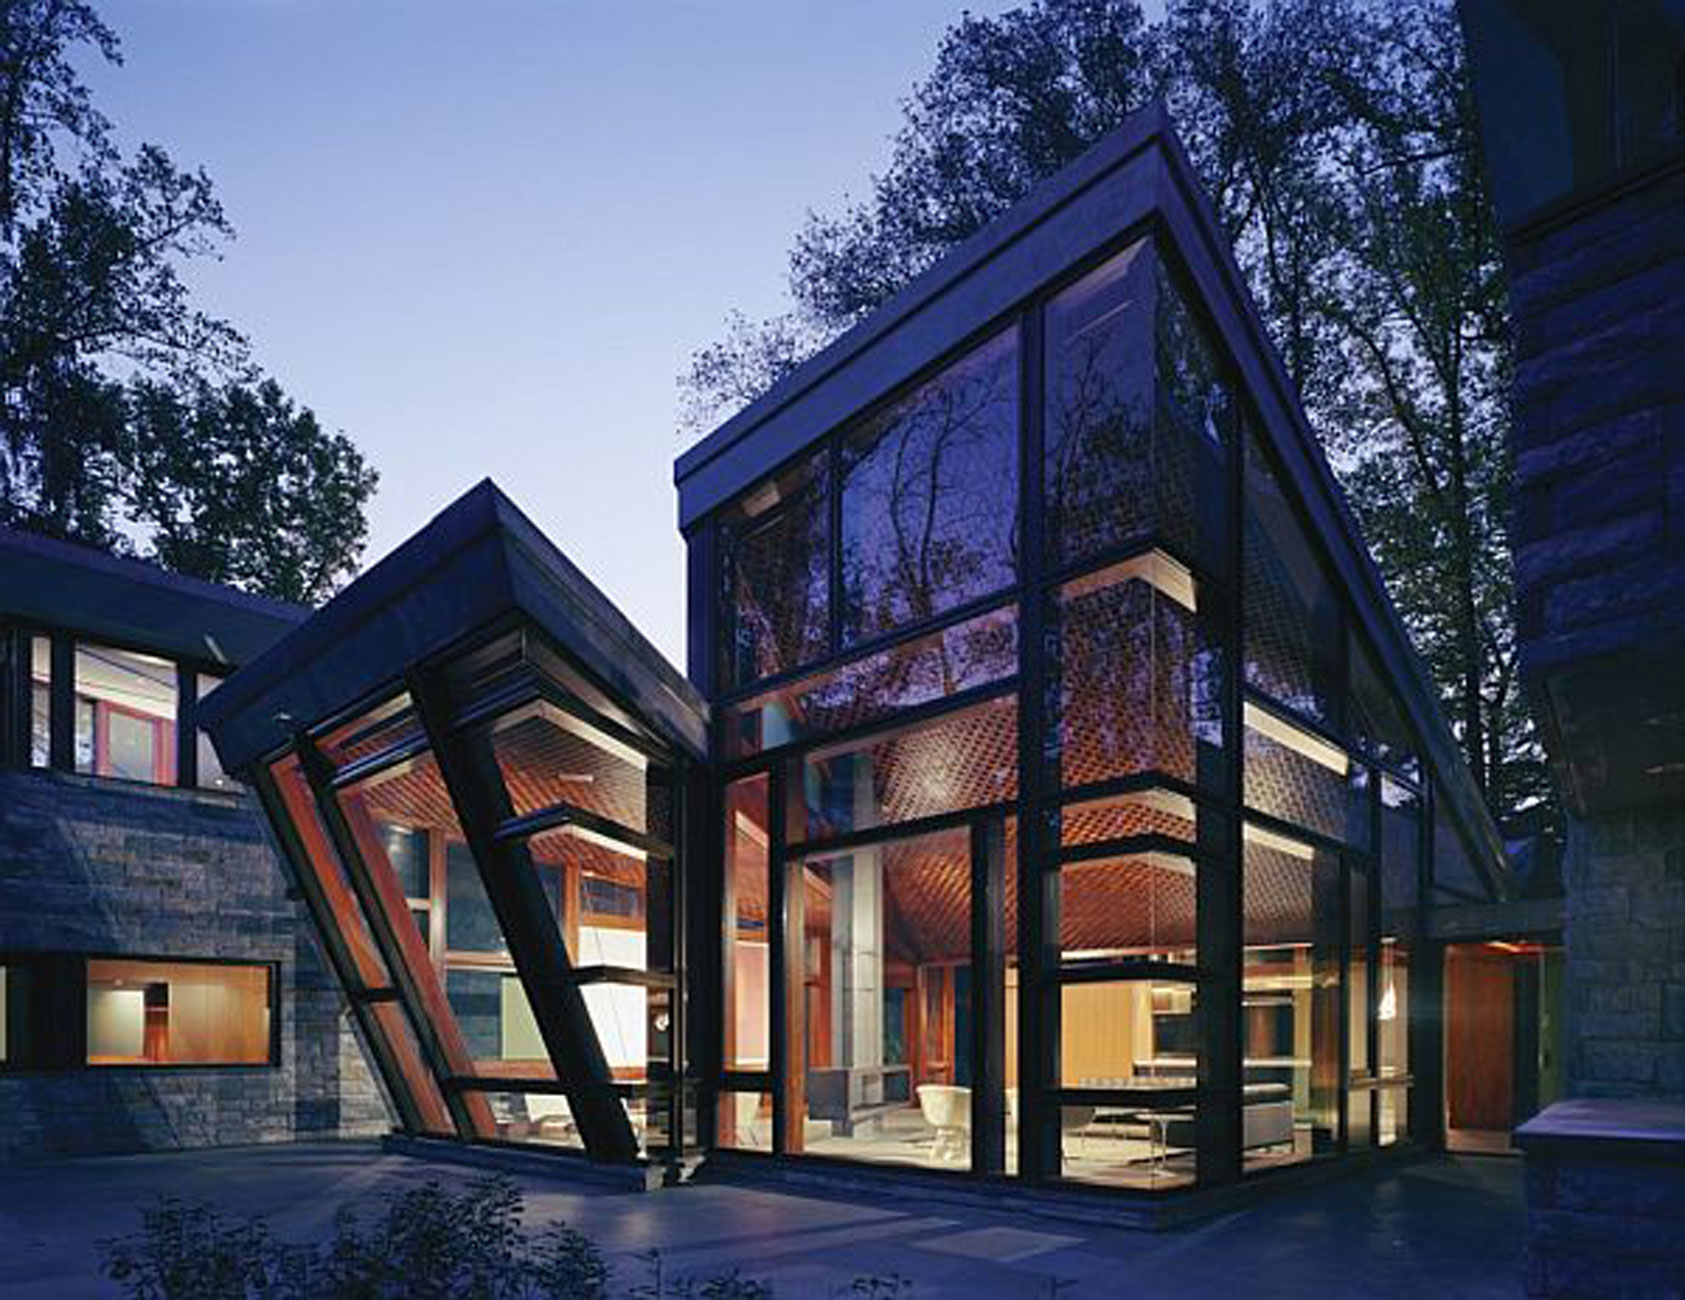 Sunday evening art gallery blog glass houses humoring for Beautiful architecture houses